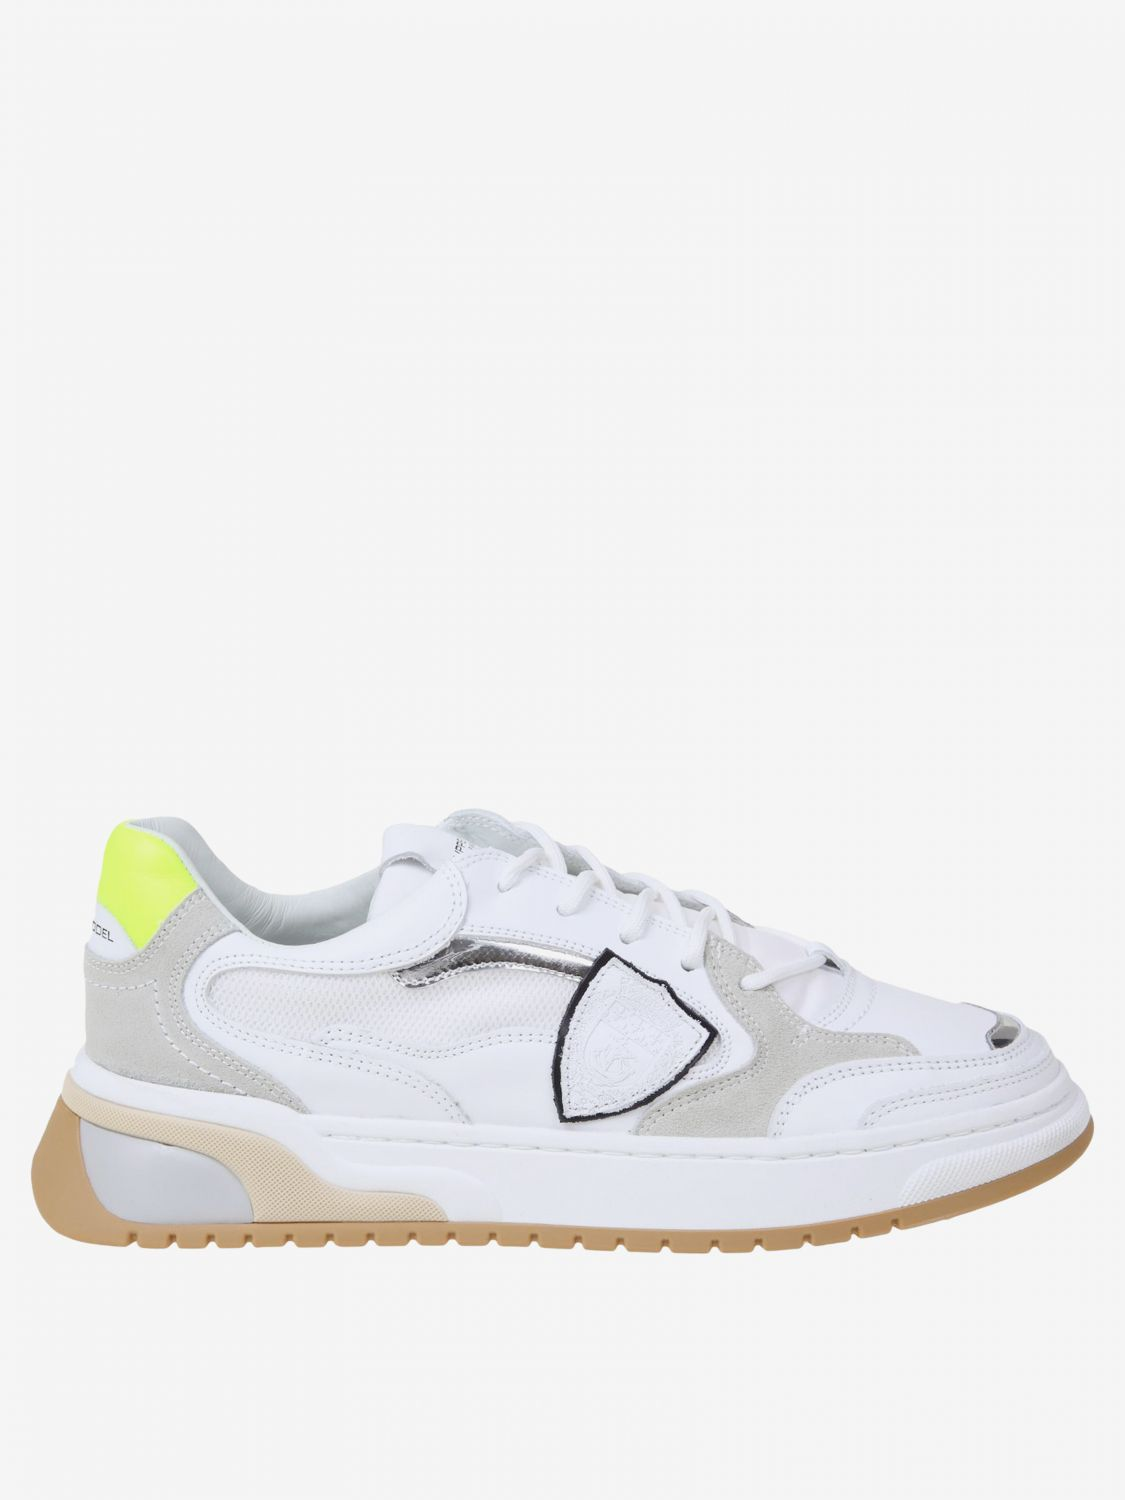 Baskets homme Philippe Model blanc 1